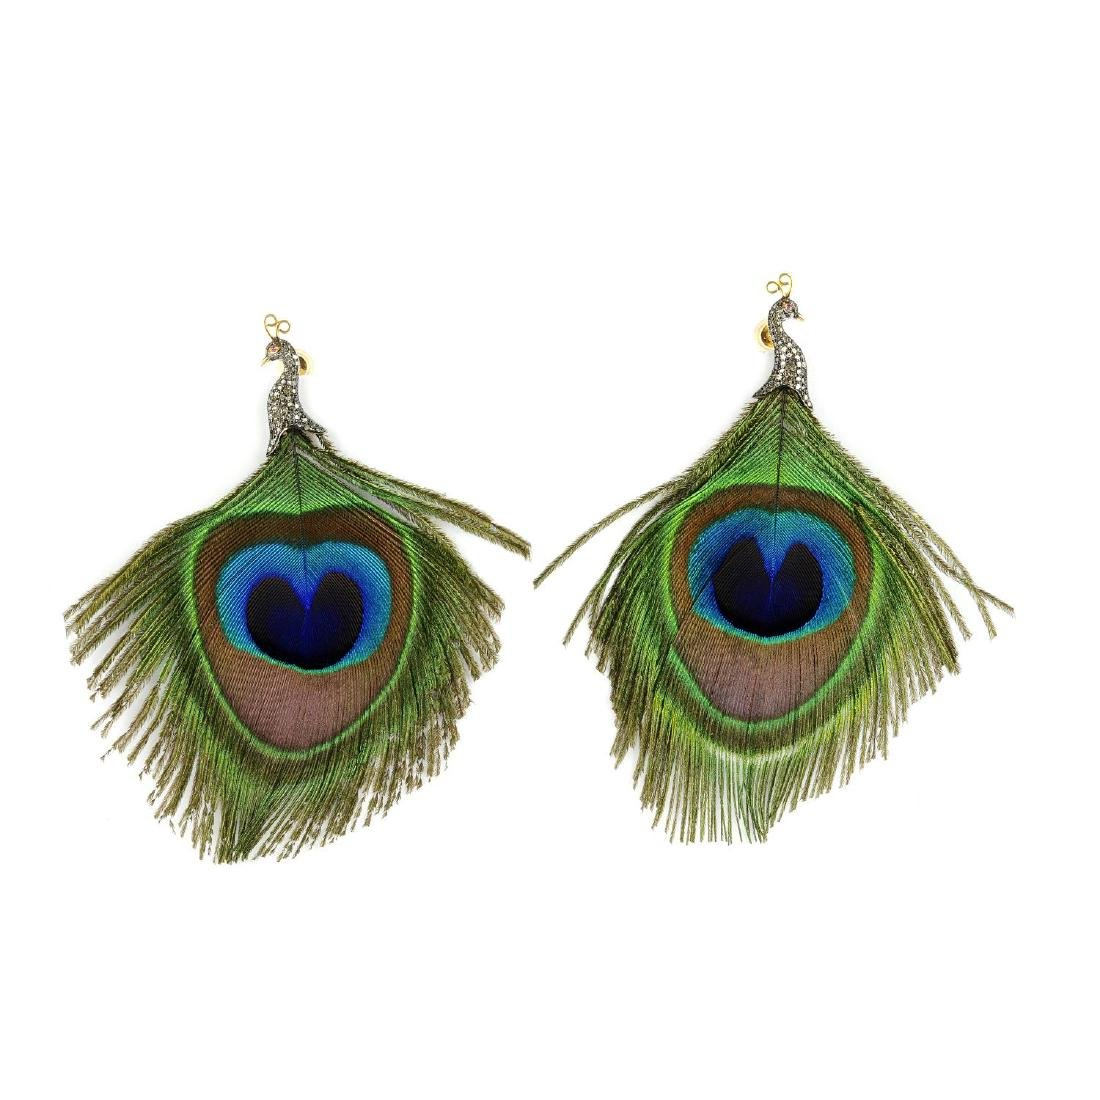 A pair of peacock feather and diamond earrings. The